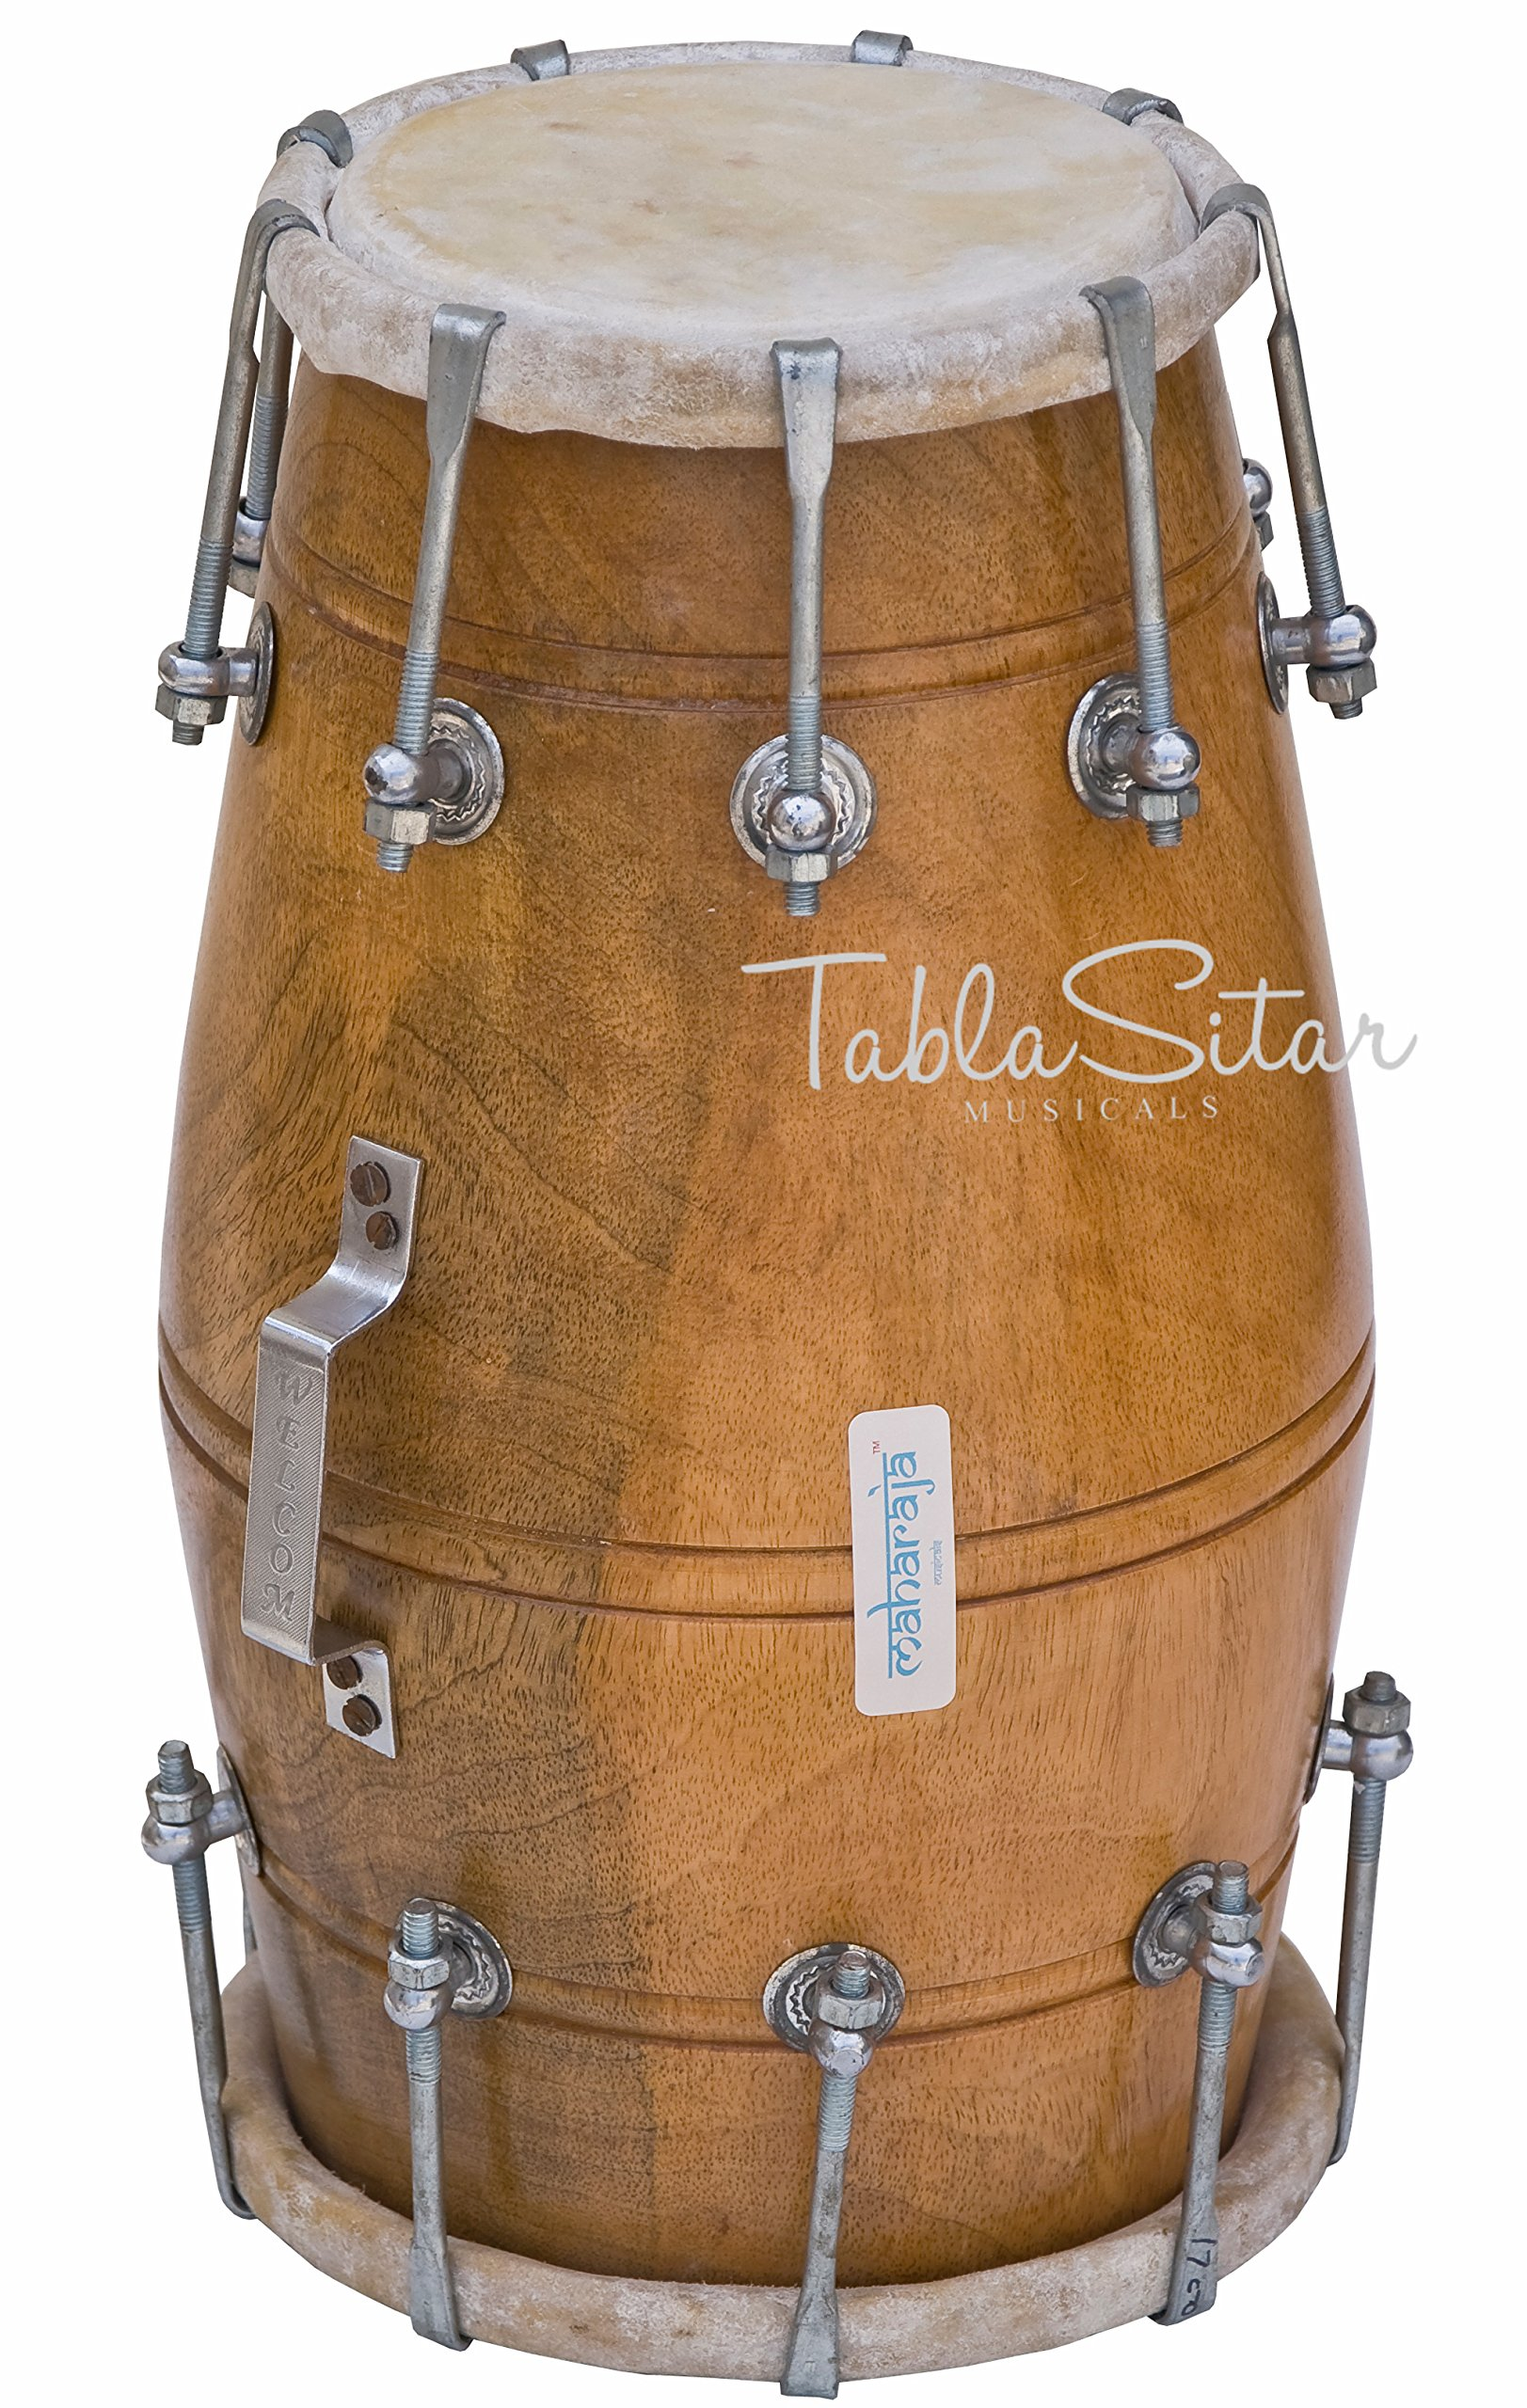 Maharaja Musicals Dholak Drum, Mango Wood, Bolt-tuned, Padded Bag, Spanner, Dholki Musical Instrument (PDI-AJD) by Maharaja Musicals